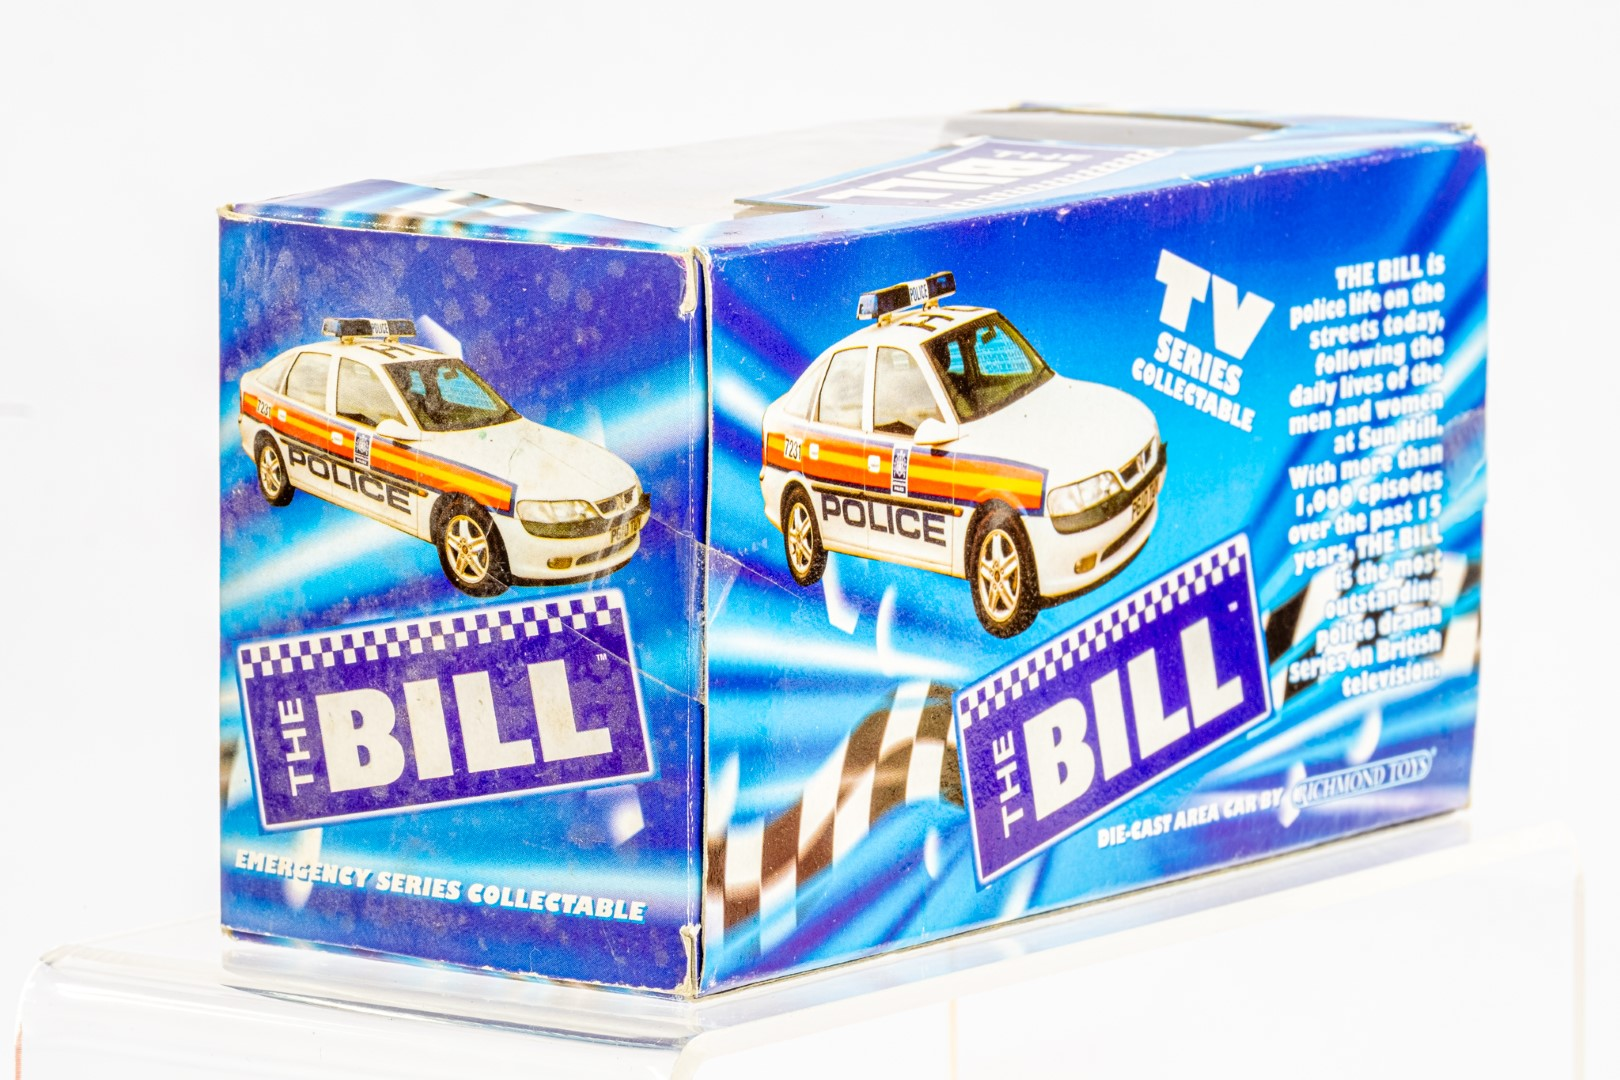 Richmon Toys Ford Transit Police Van - The Bill - Image 3 of 7